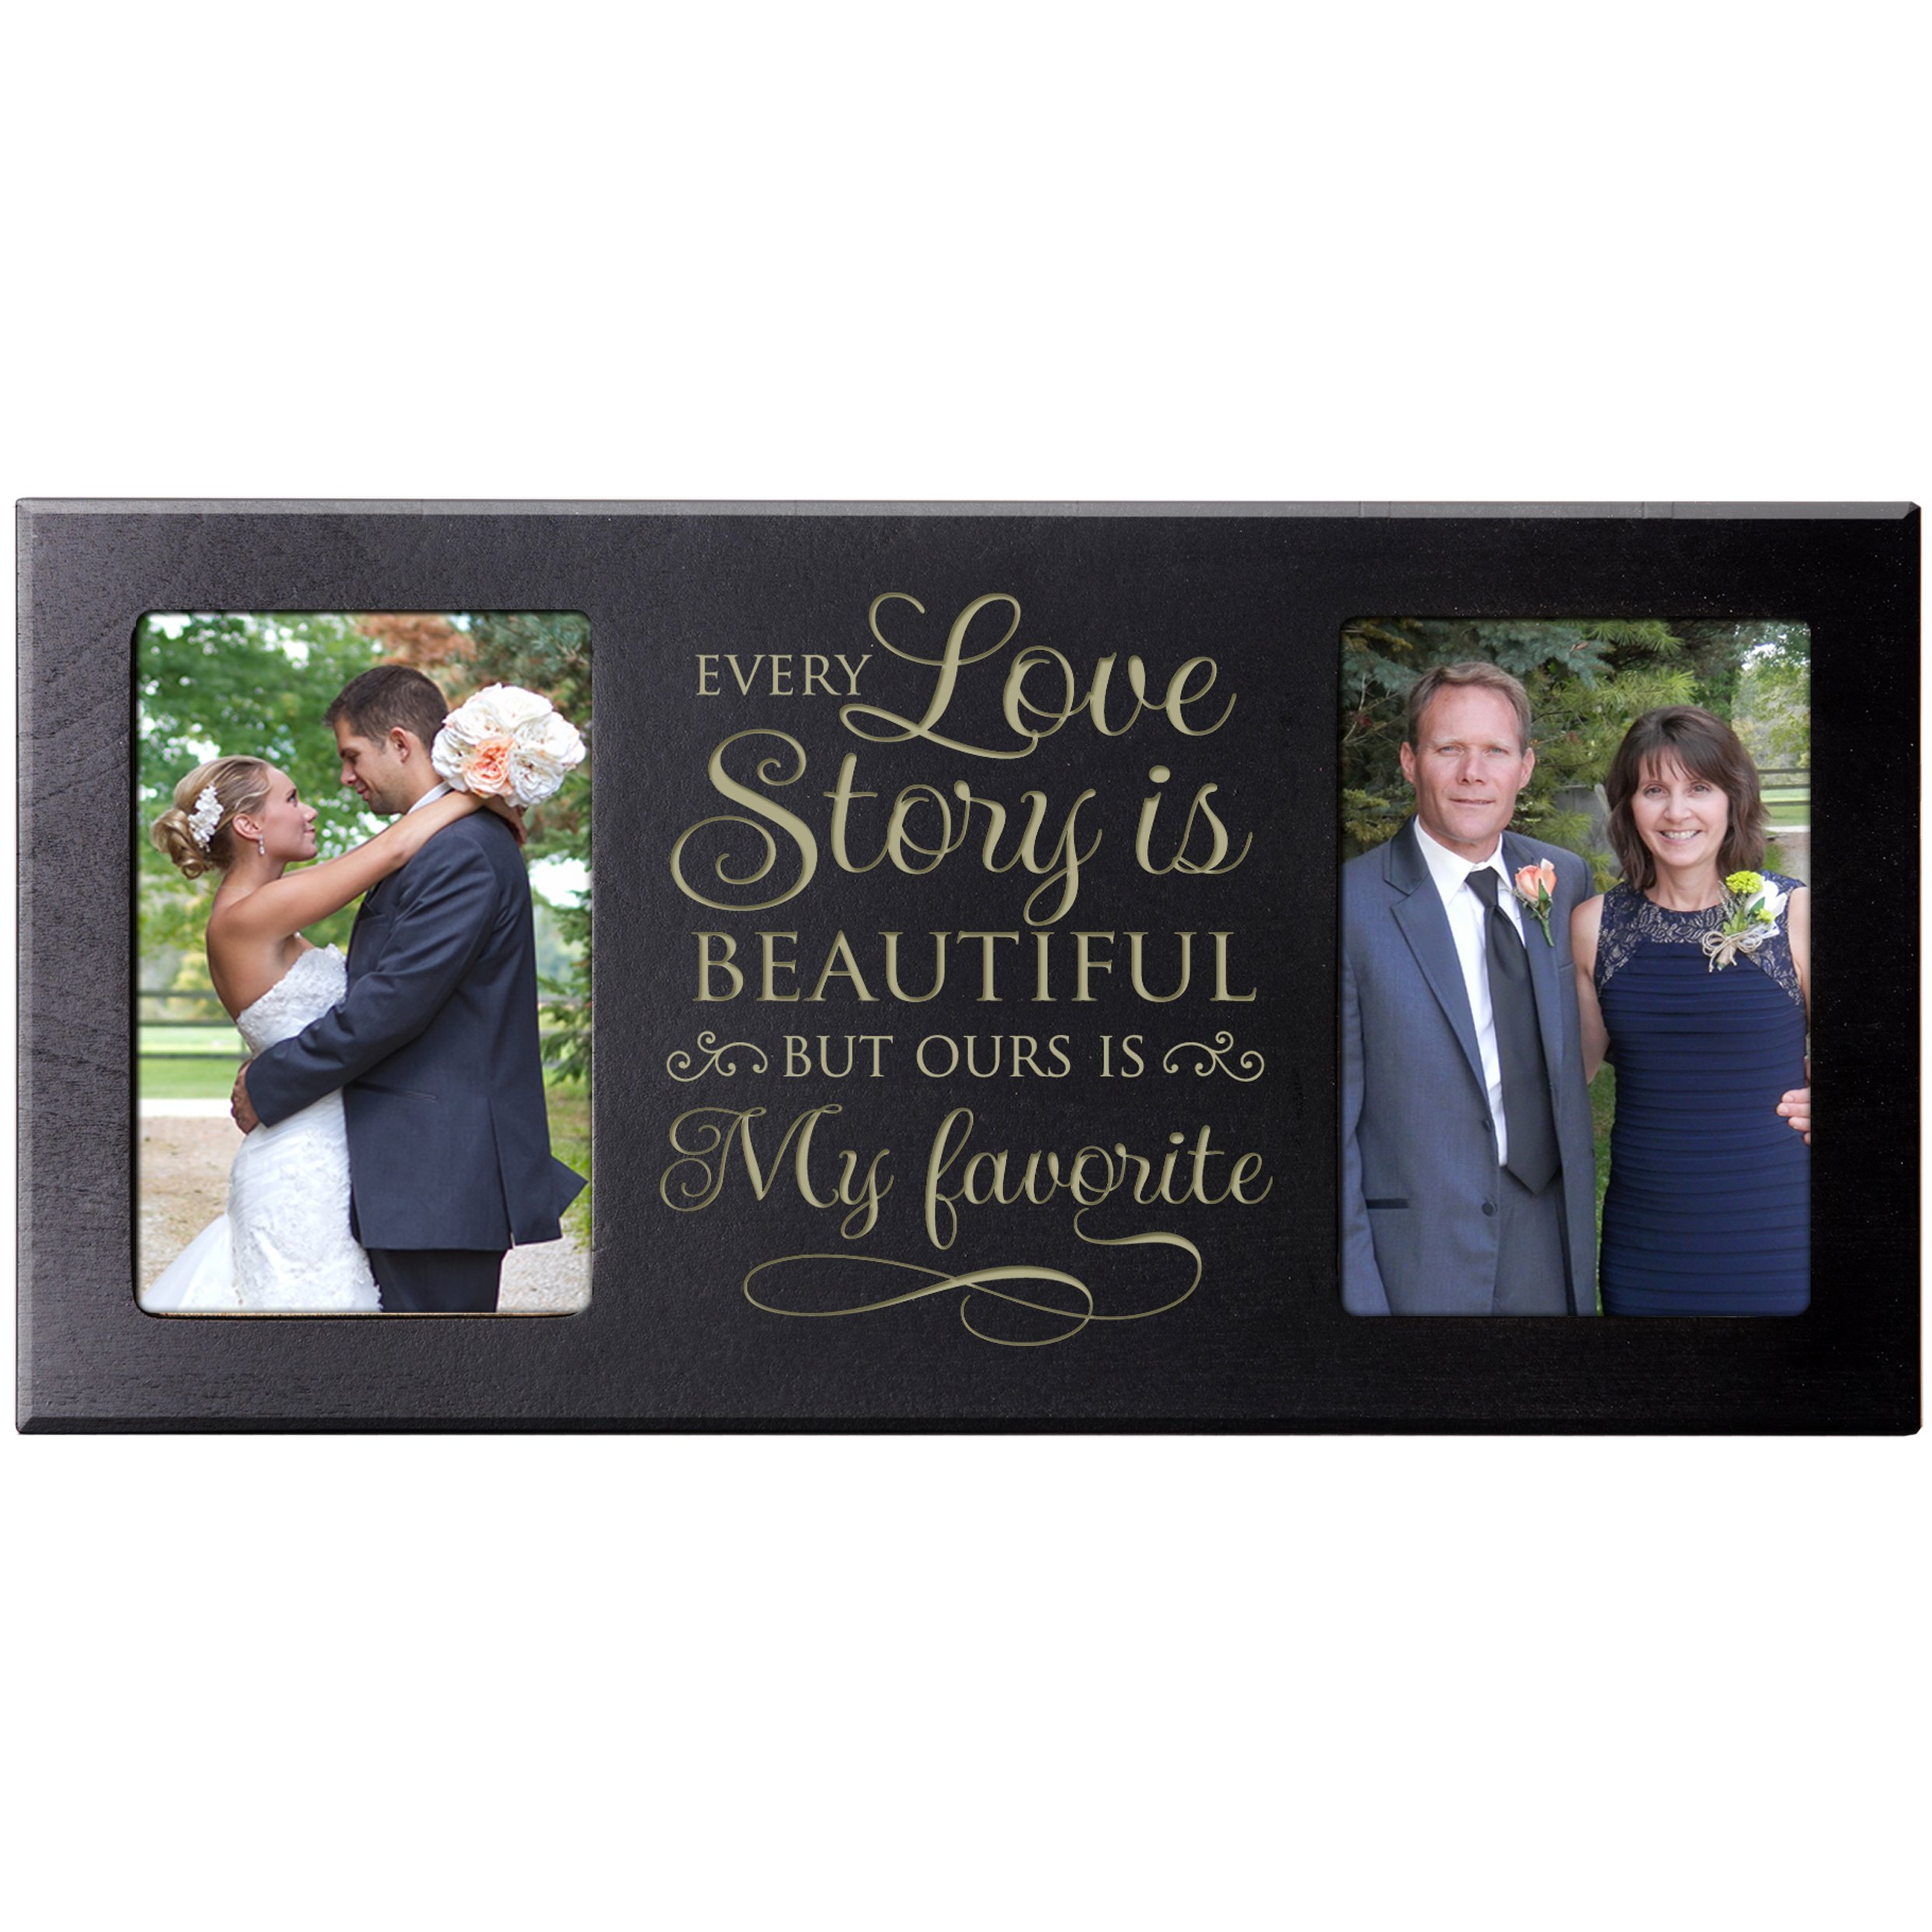 LifeSong Milestones Parent Wedding Gift,Wedding Photo Frame, picture frame gift for Bride and Groom for parents Every Love Story is Beautiful 16'' L x 8'' H from (Black)